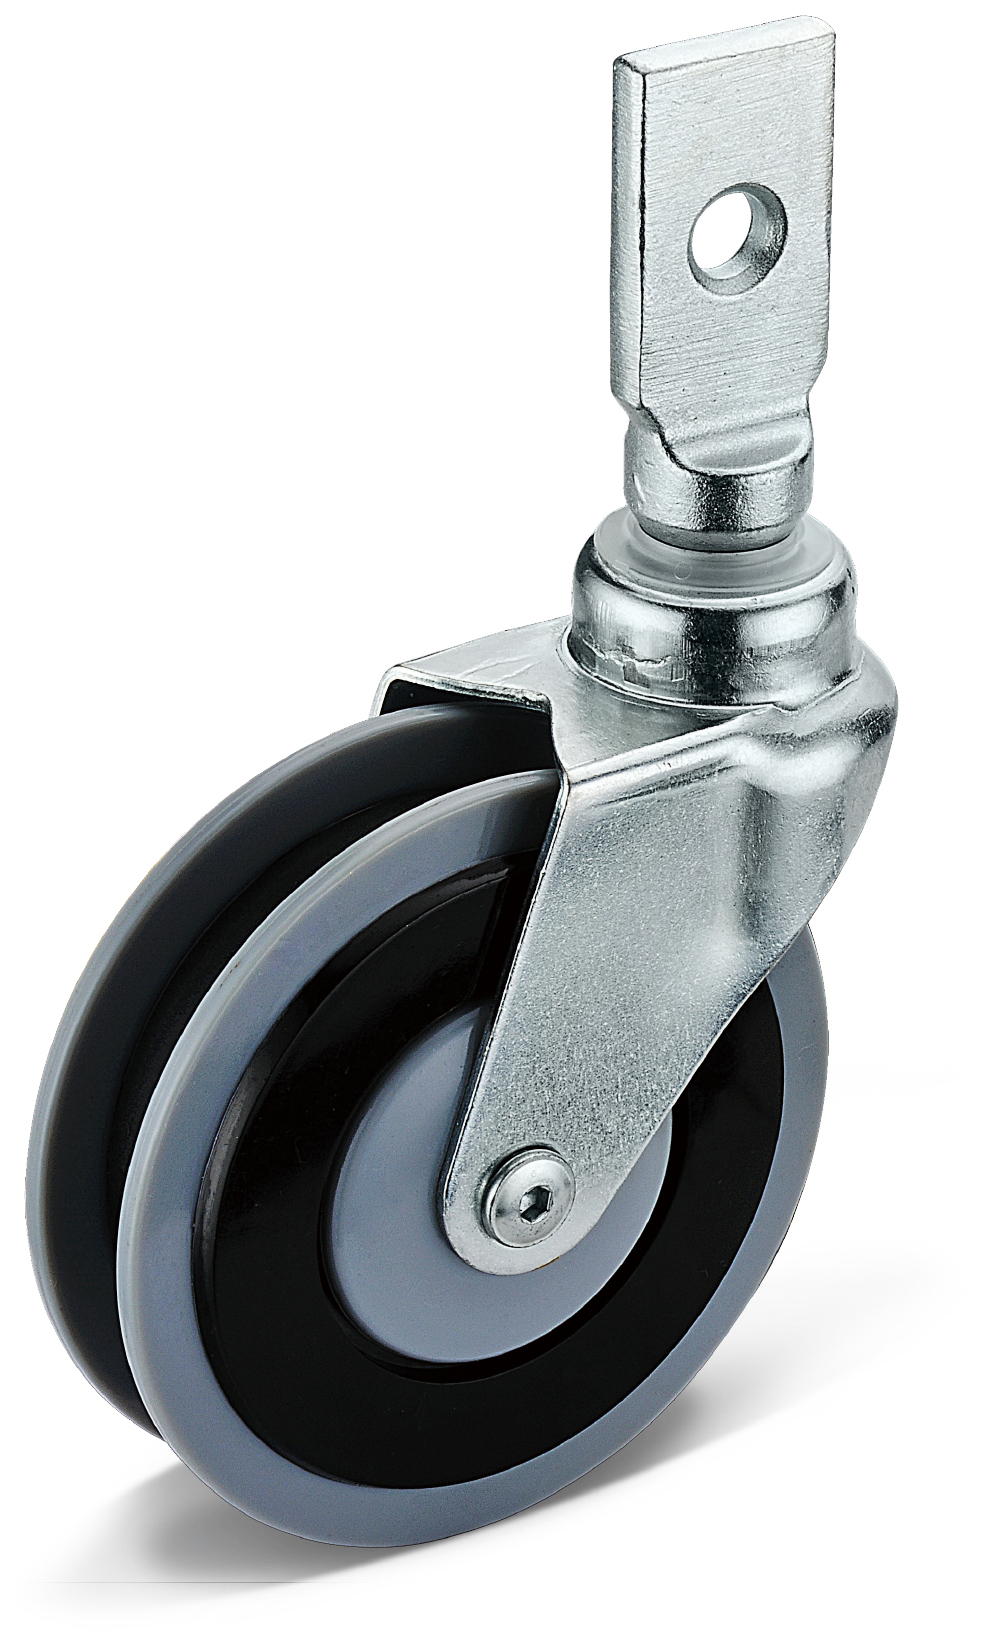 PU Square Socket Casters